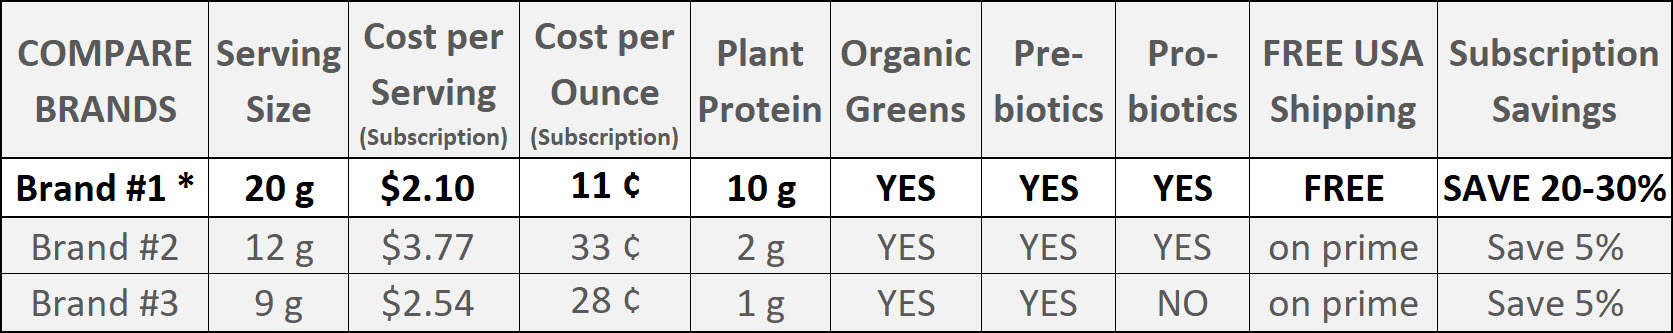 Compare three Top Brands of Superfoods and Greens products